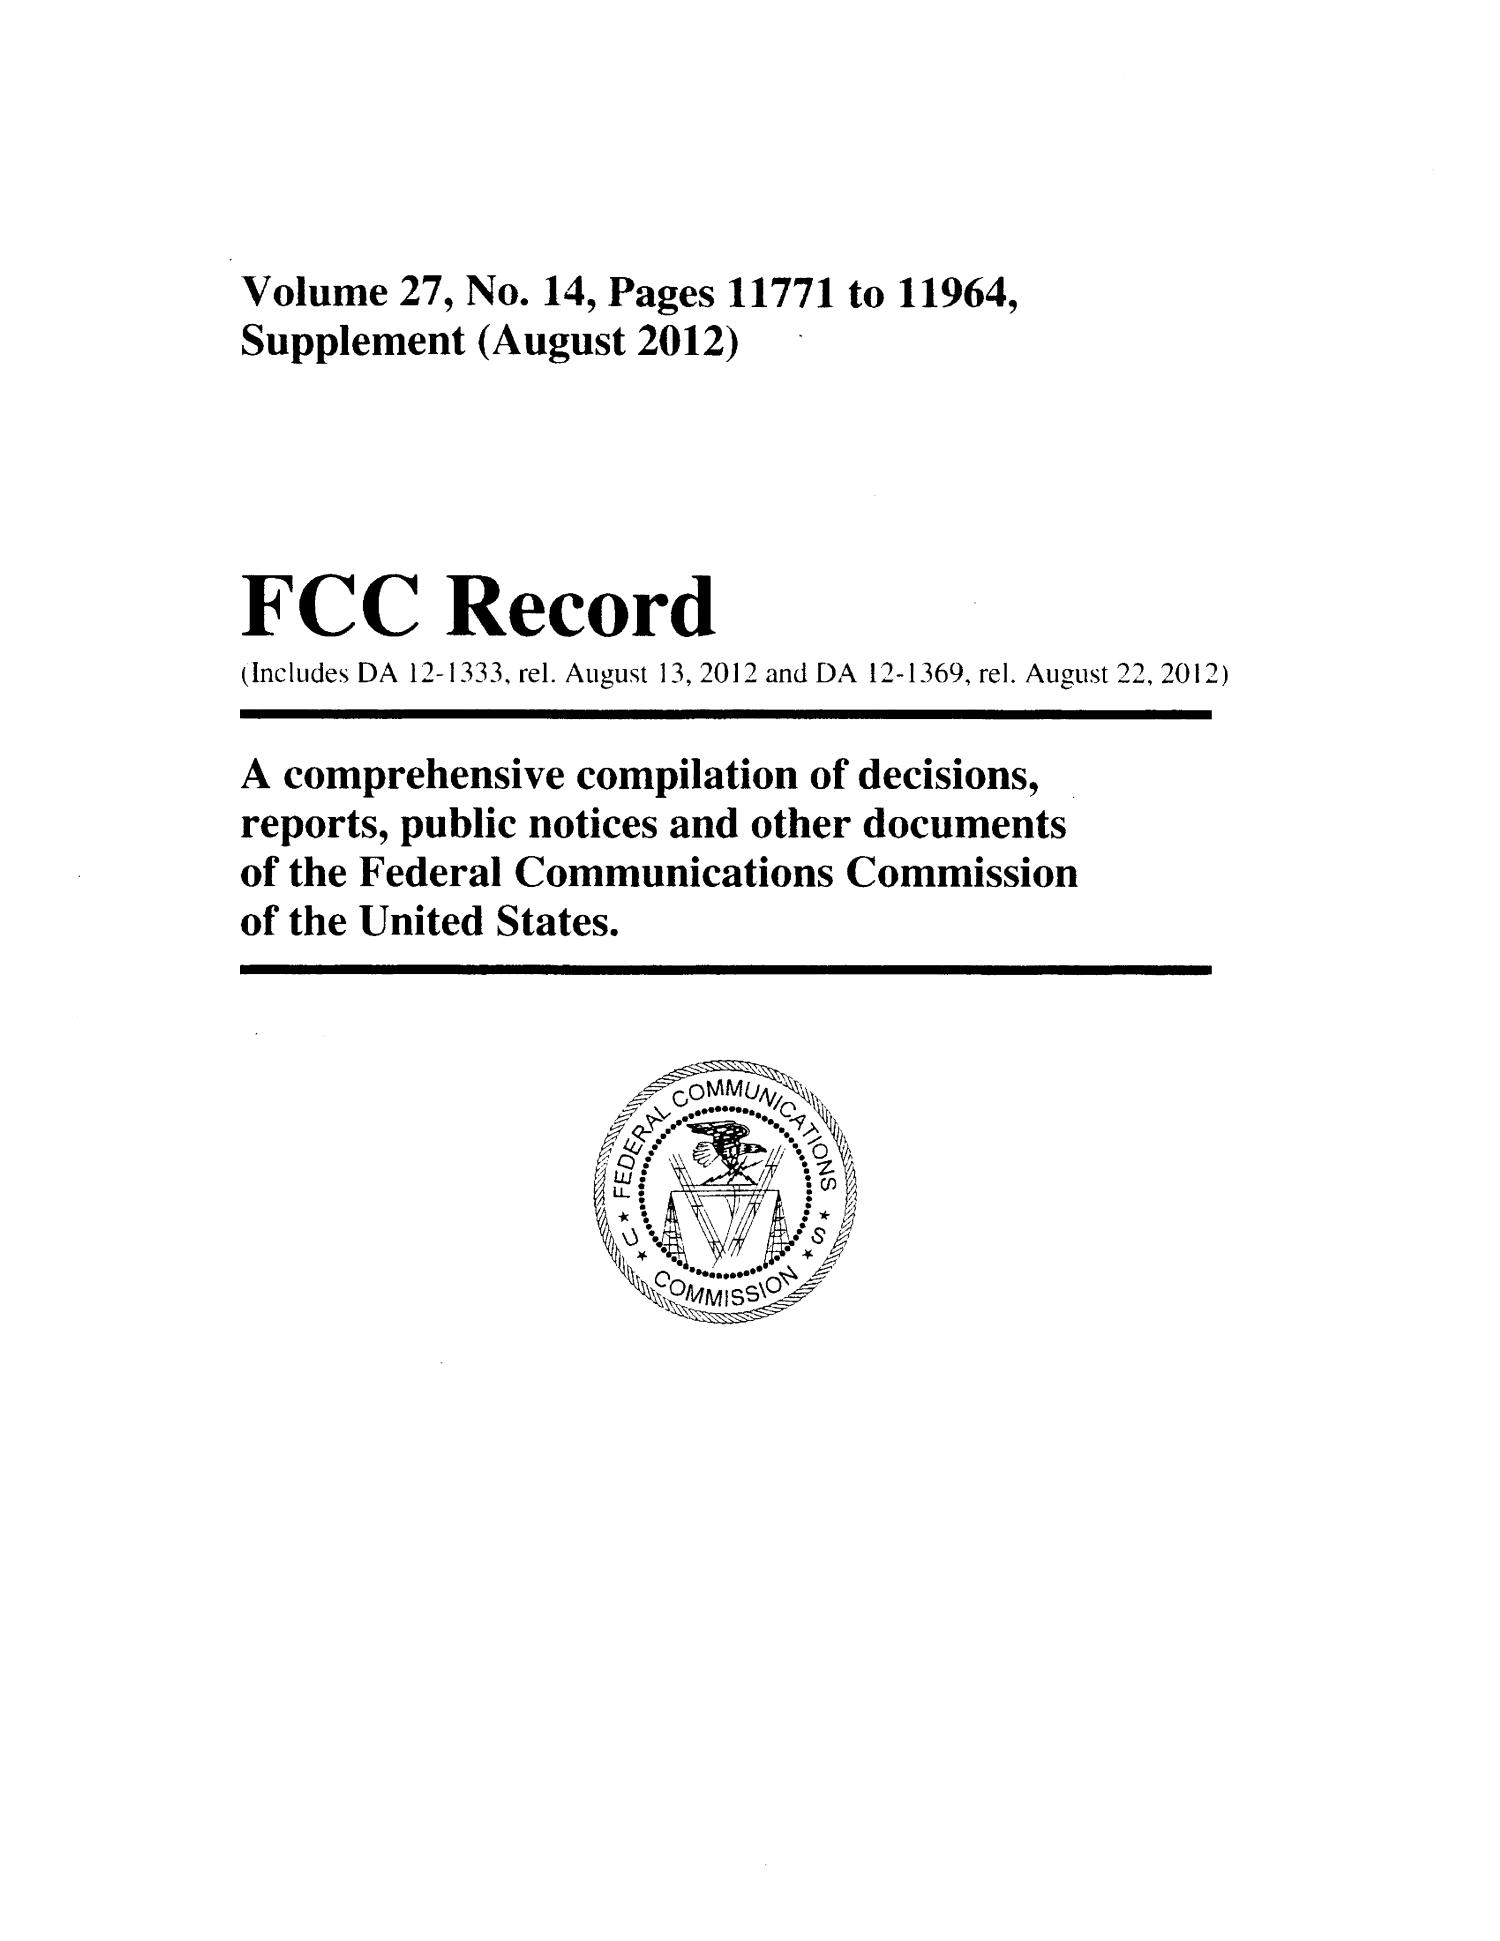 FCC Record, Volume 27, No. 14, Pages 11771 to 11964, Supplement (August 2012)                                                                                                      Title Page